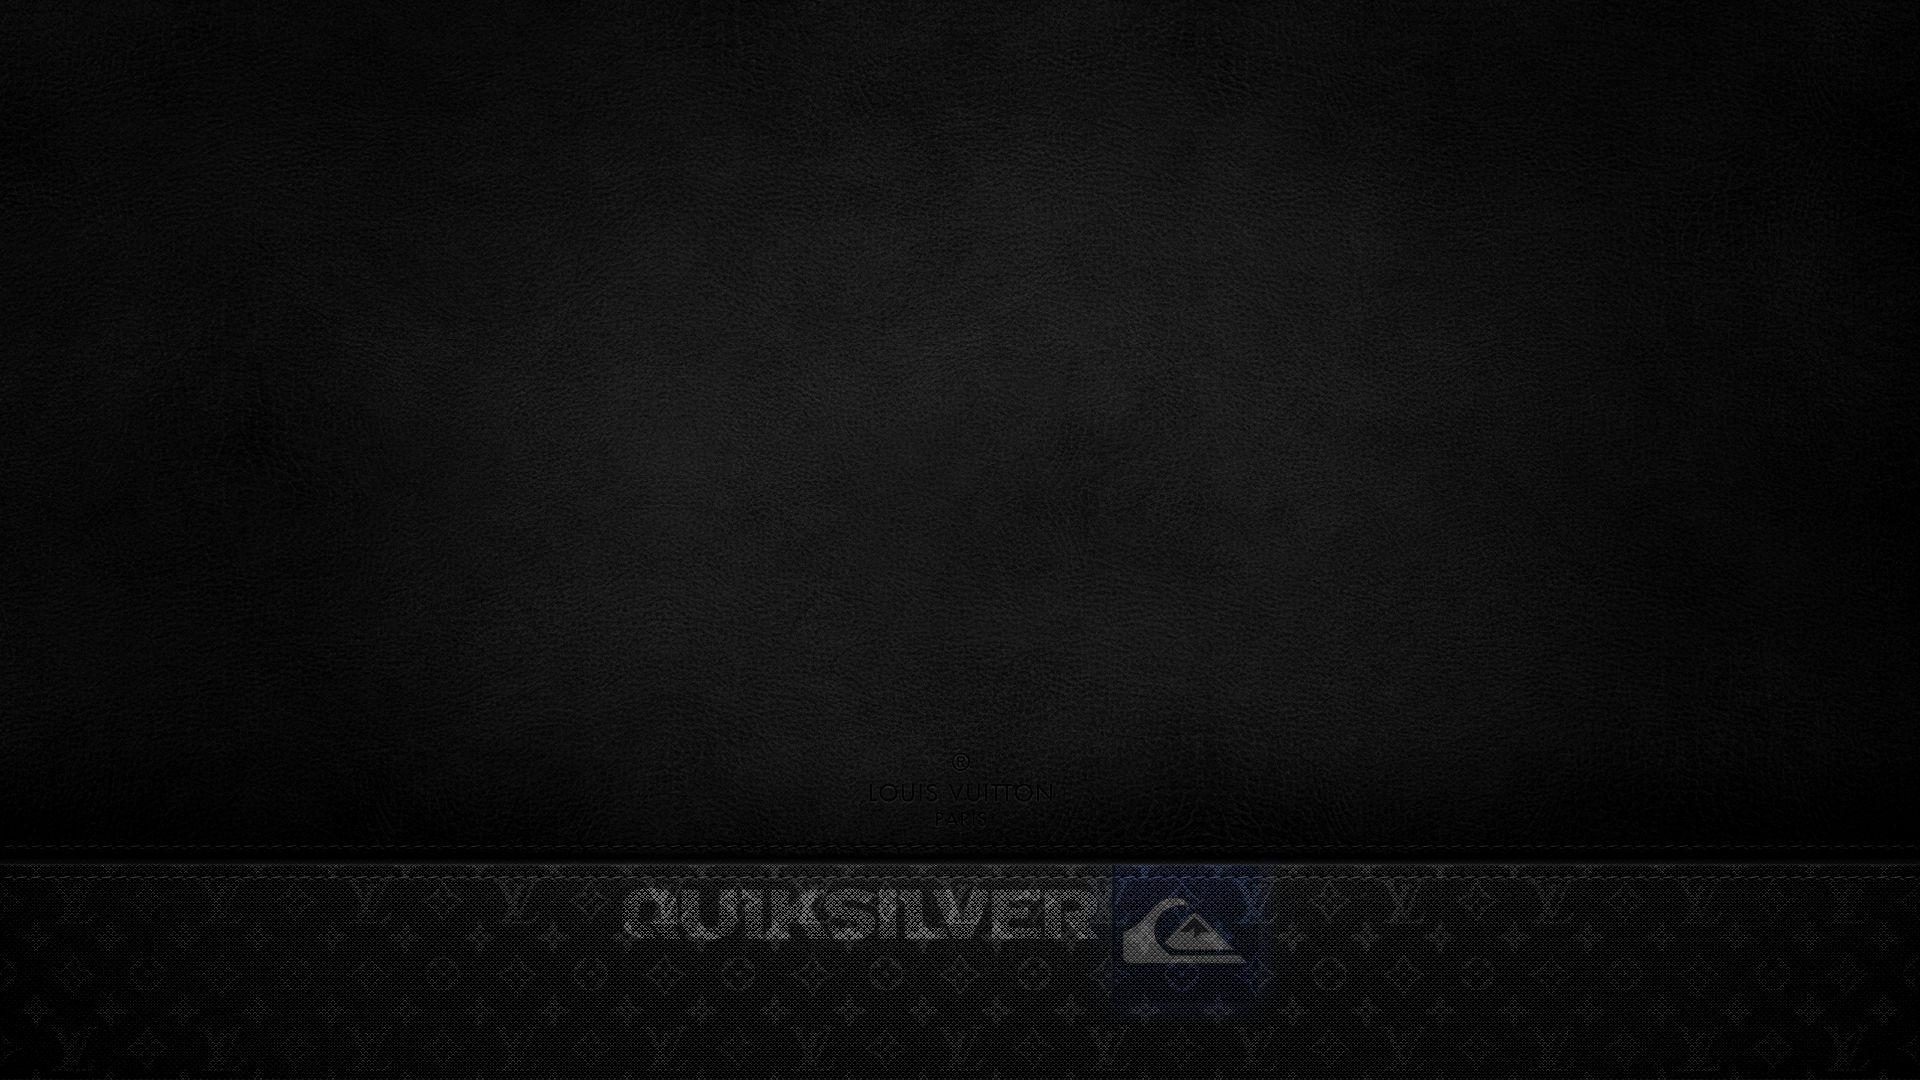 quiksilver wallpapers HD